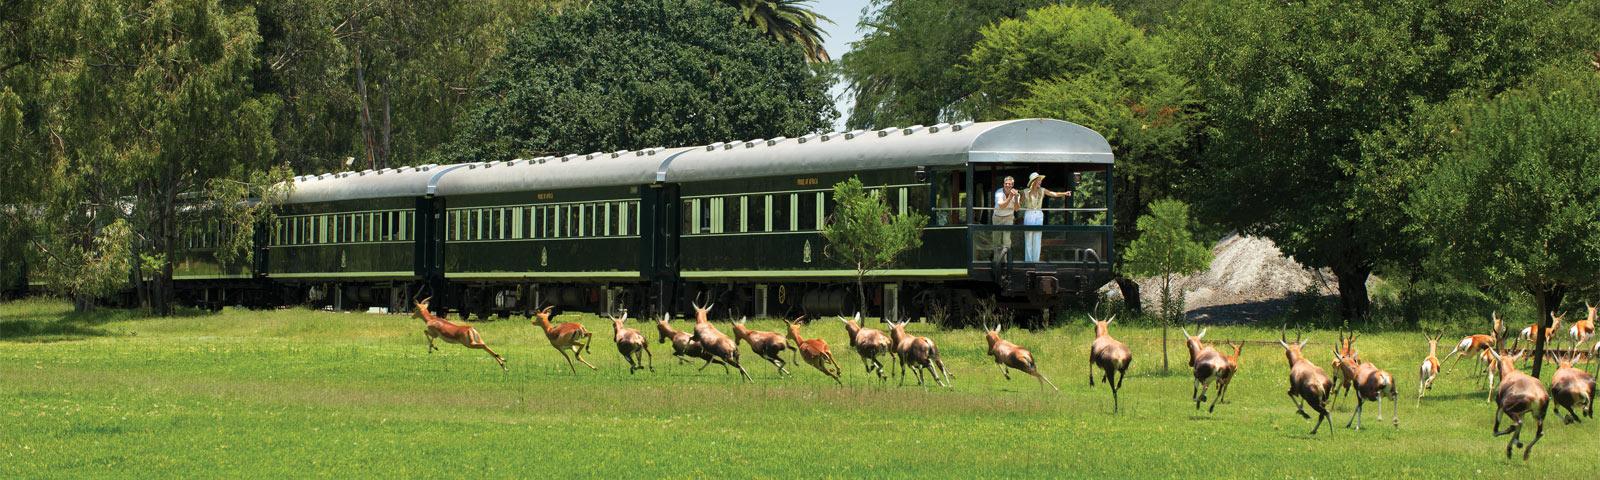 Rovos Rail – A Luxurious Rail Journey in South Africa